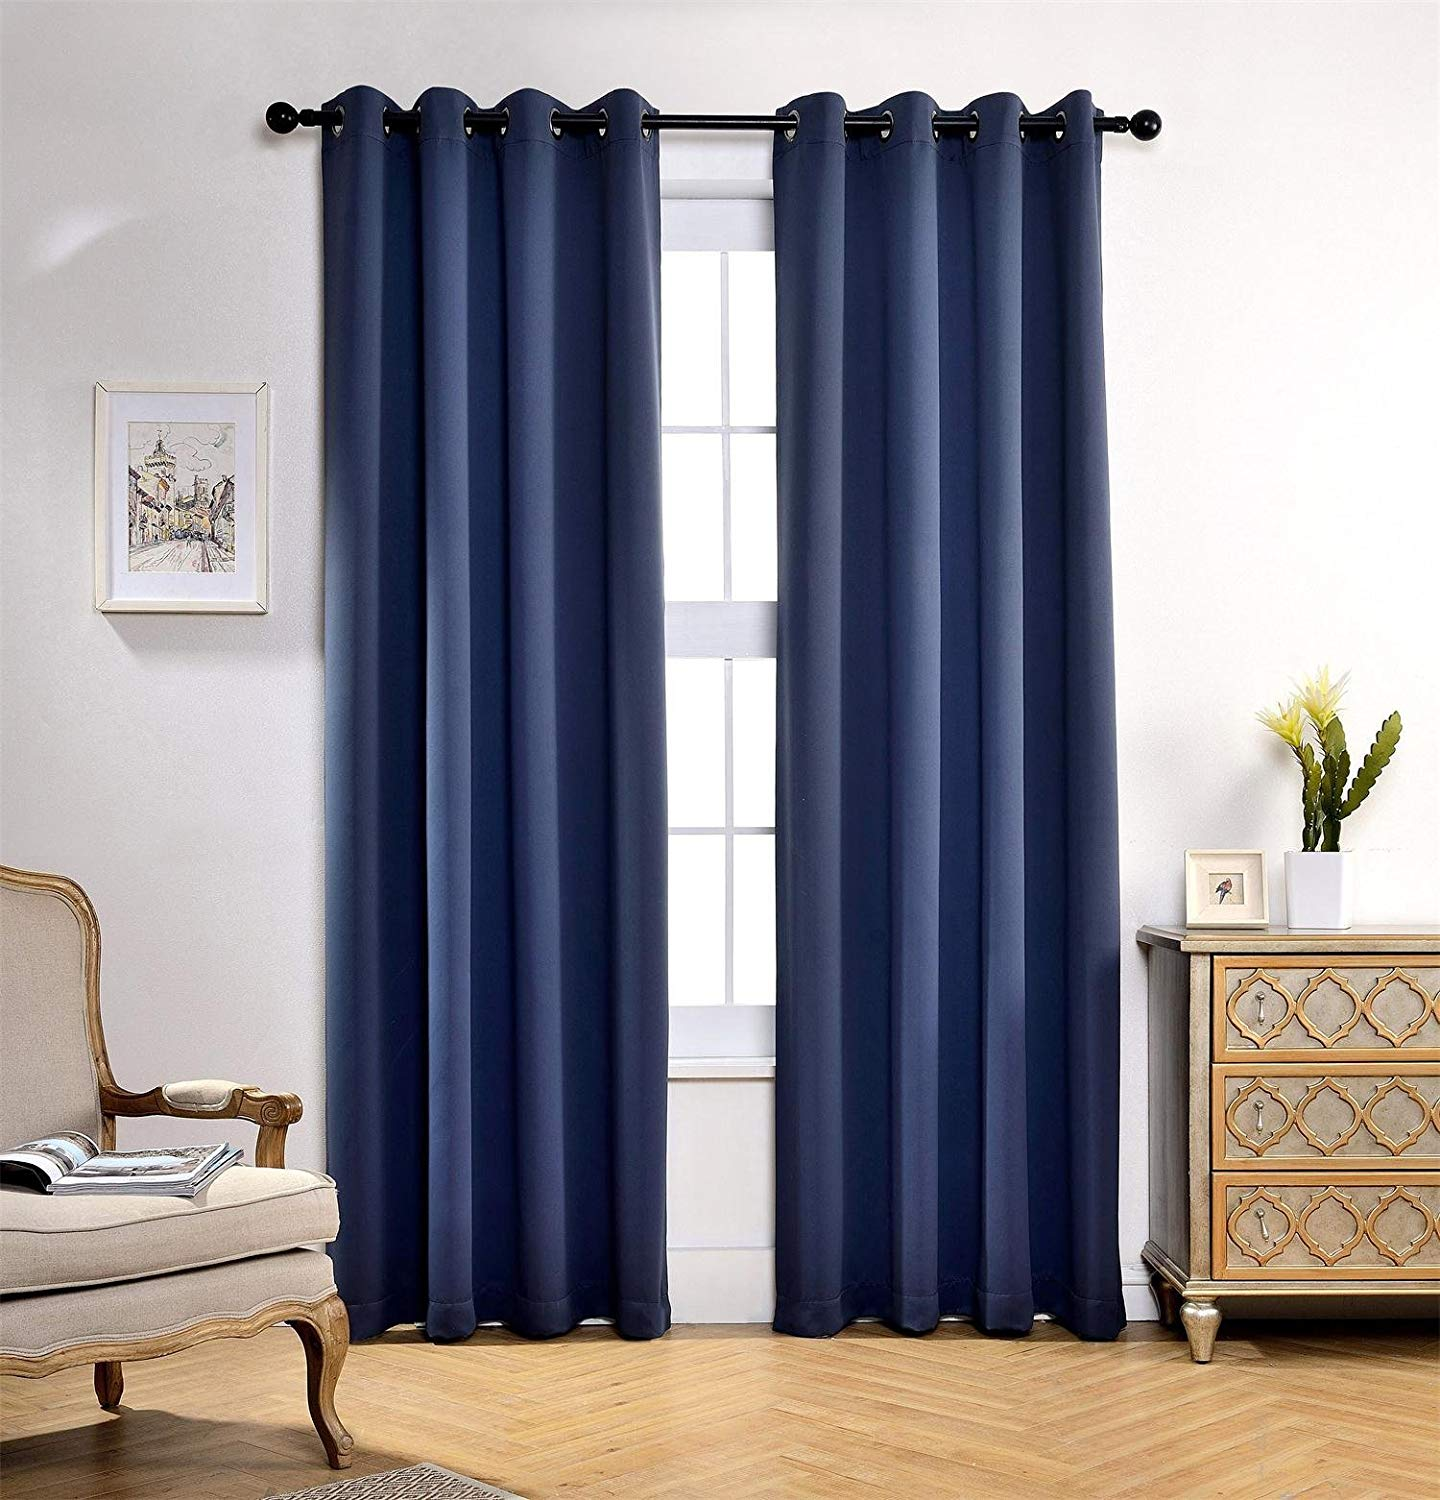 Best Blackout Curtains for Bedrooms: Miuco